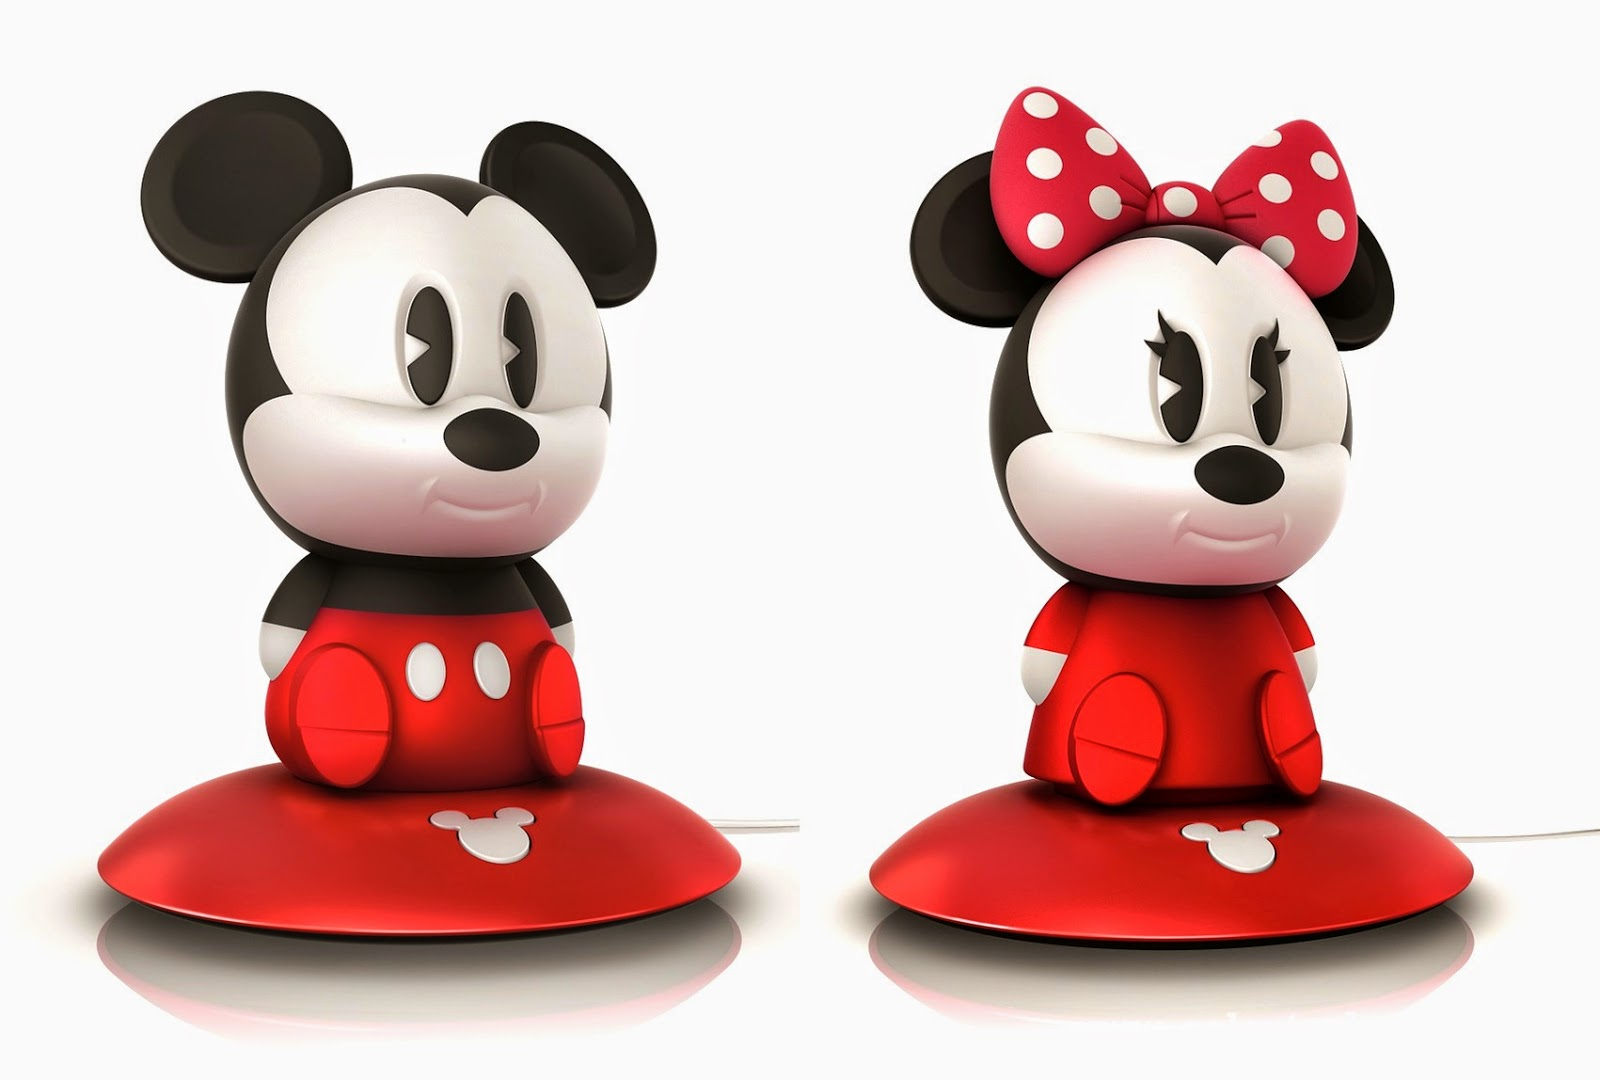 philips_disney_softpals_imaginative_lighting_mickey_minnie